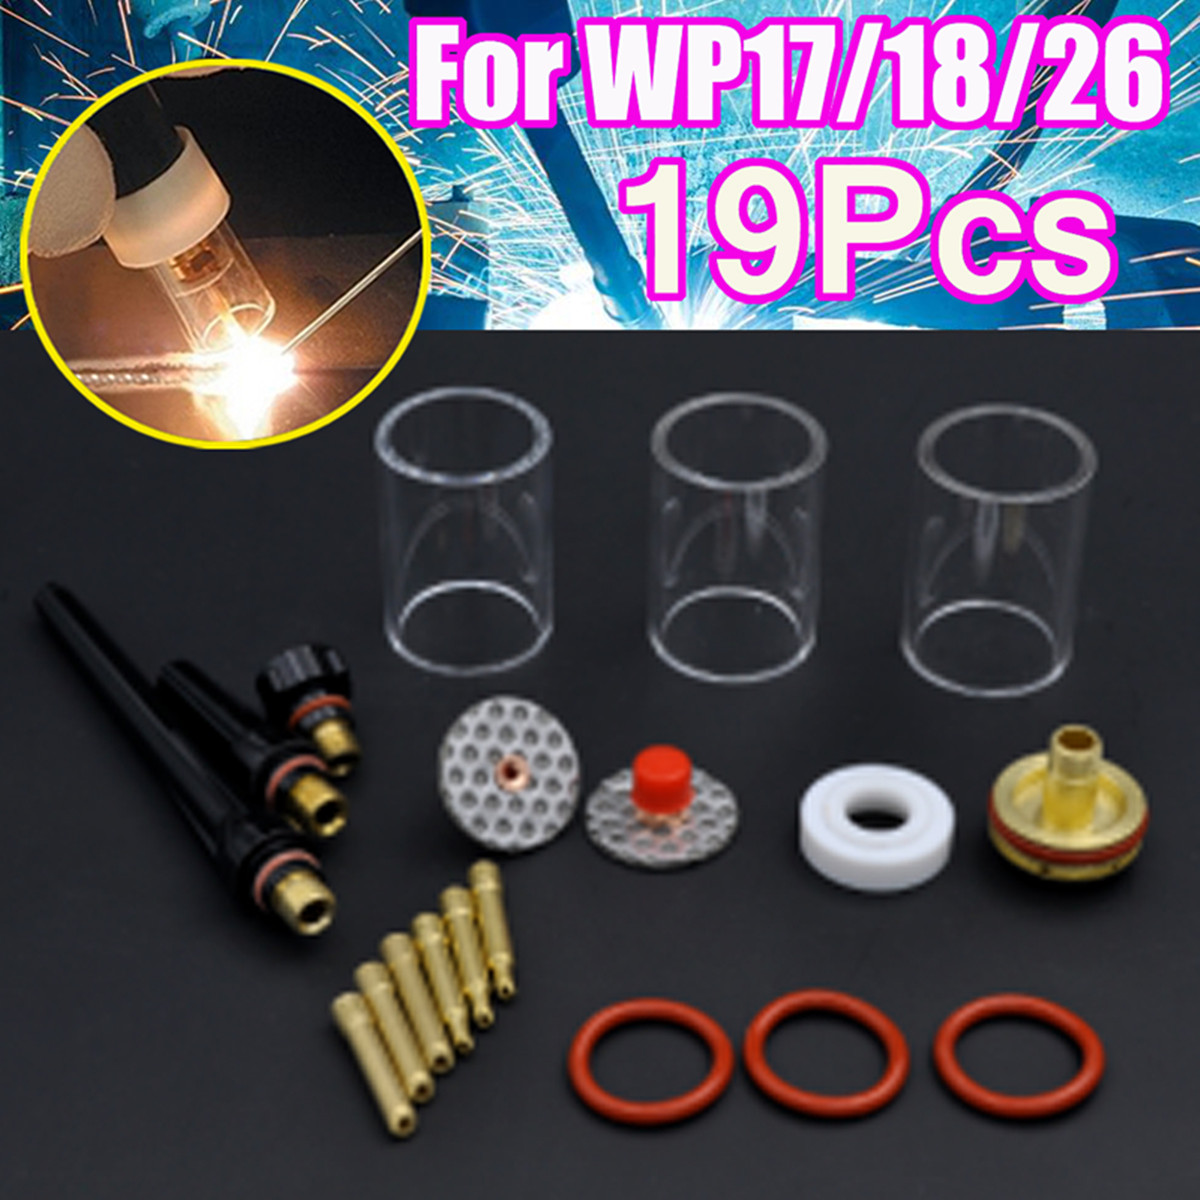 New 19PC TIG Welding Torch Kit Tungsten Needle Clip Stubby Collet Body Gas Lens Insulator Pyrex Glass Cup for WP-17/18/26 Series 49pcs practical tig welding kit welding torch accessories collet body stubby gas lens 10 pyrex glass cup for wp 17 18 26 mayitr